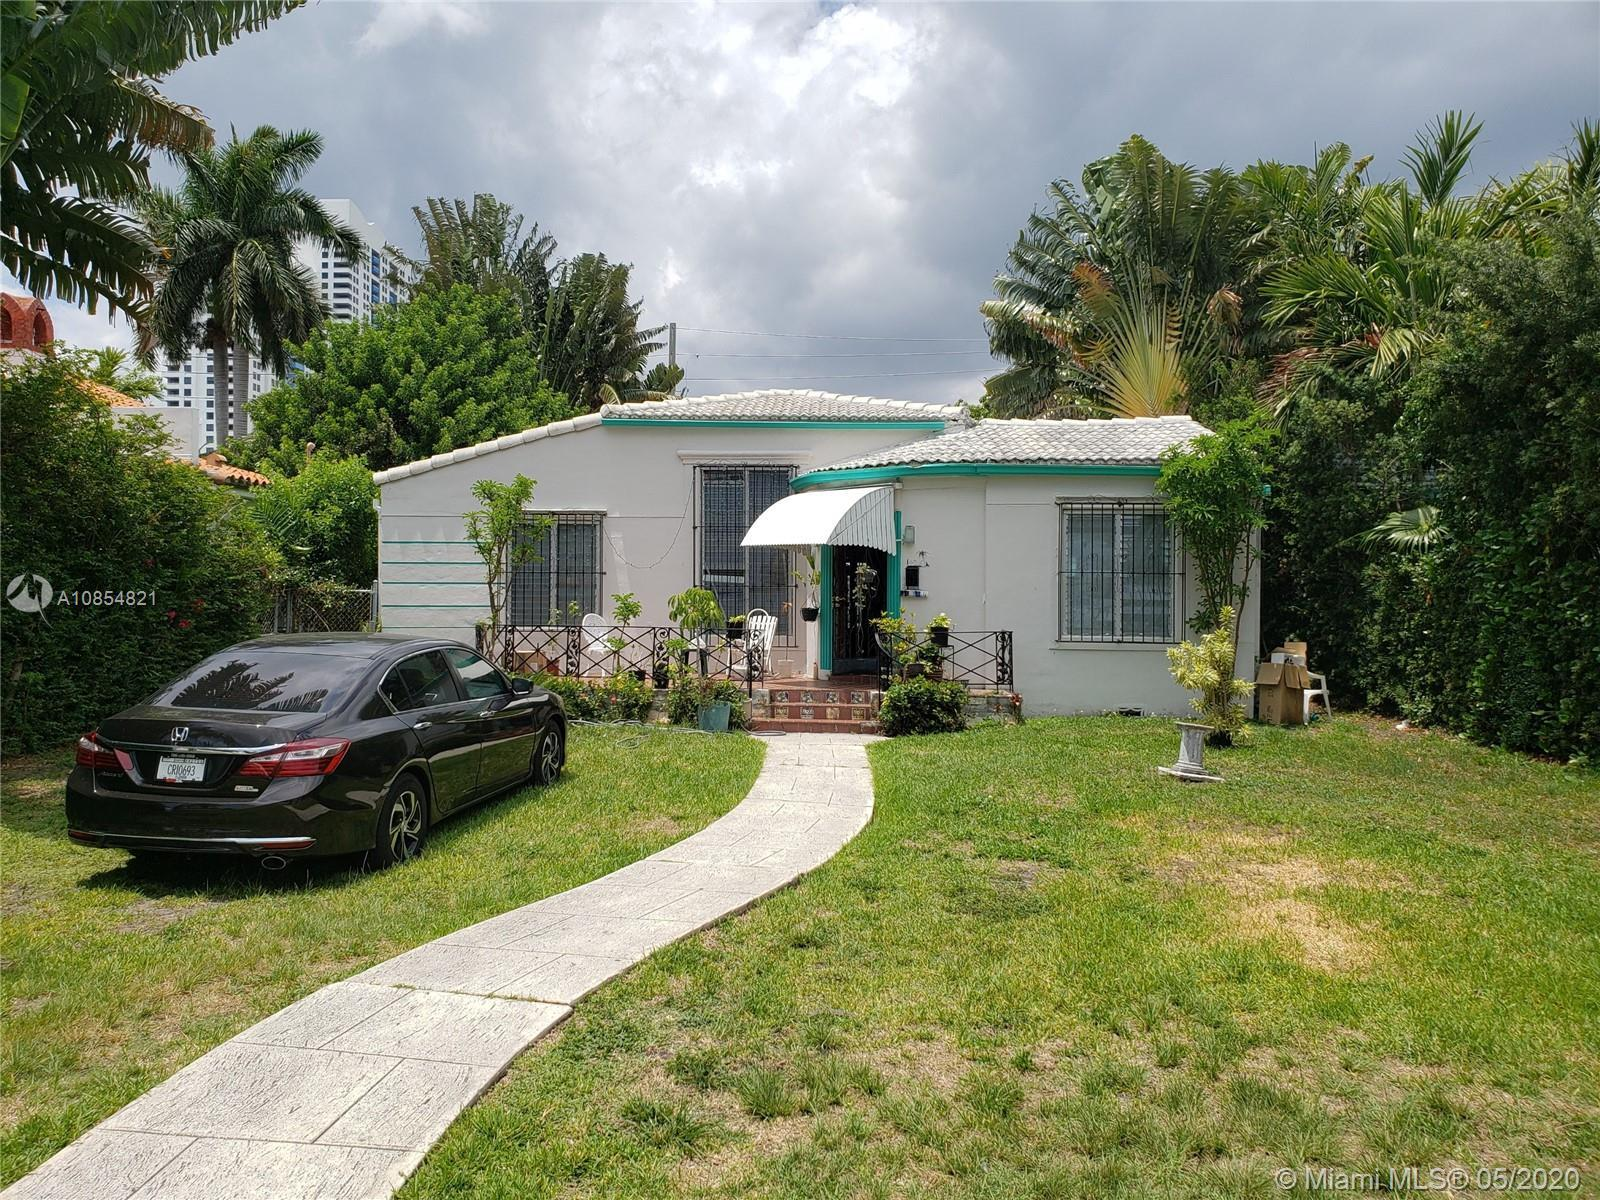 GREAT INVESTMENT OPPORTUNITY IN THE HEART OF SOUTH MIAMI BEACH, 3 BEDROOMS 2 FULL BATHROOMS, SCREENE